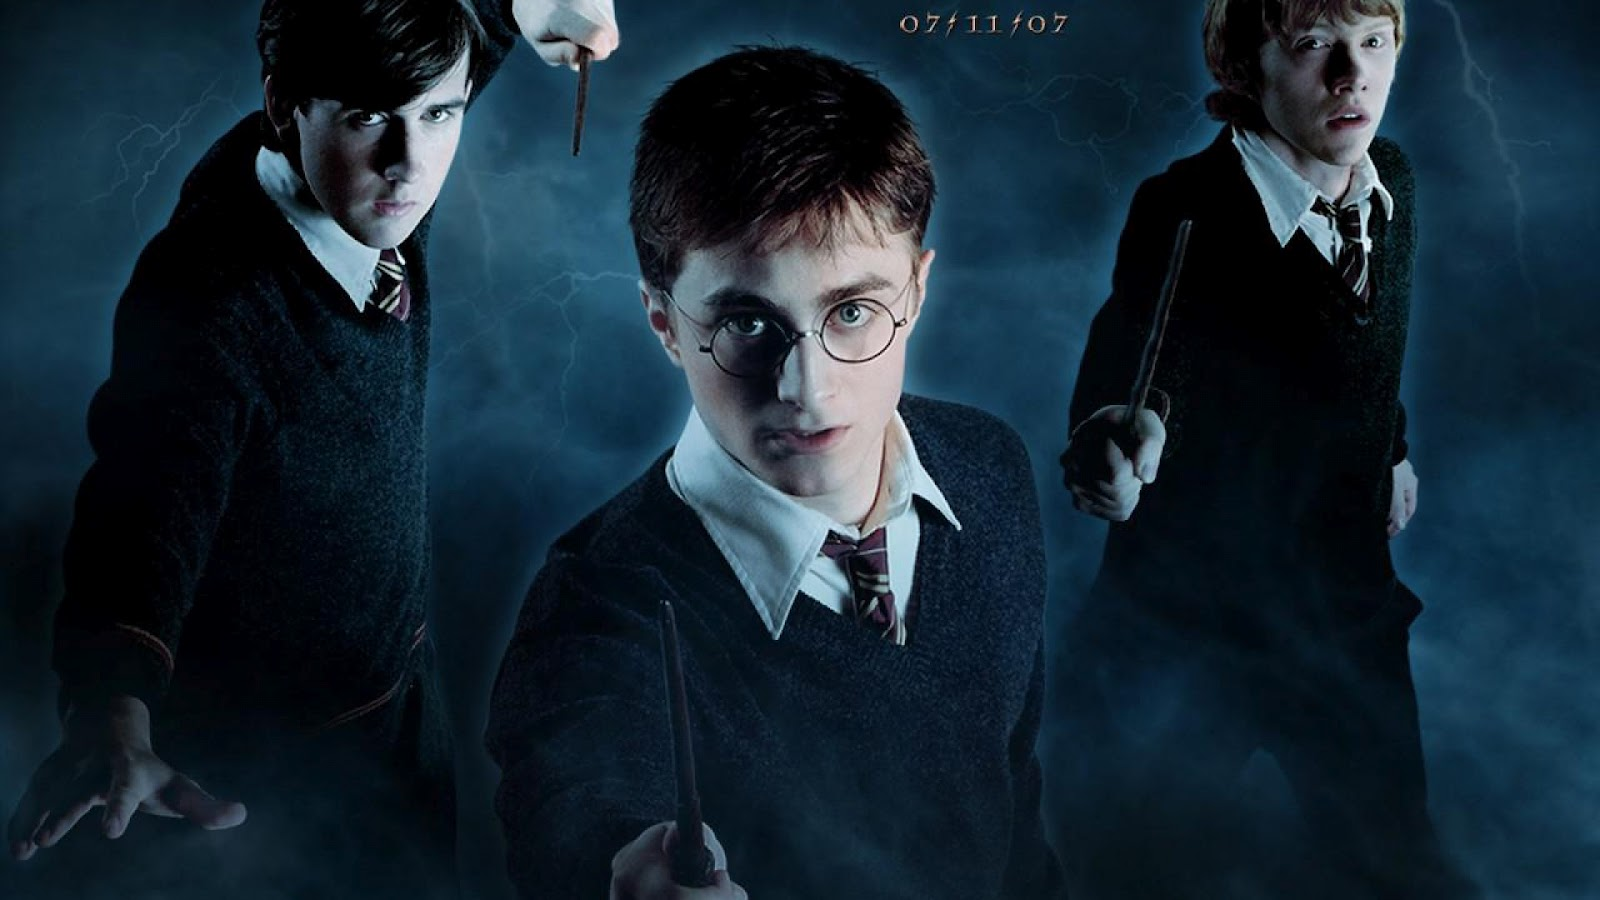 http://3.bp.blogspot.com/-gwWSkpyFczA/UBHwO9lBXTI/AAAAAAAACoE/5qh8185PCq4/s1600/harry-potter-and-the-order-of-the-phoenix-wallpaper.jpg